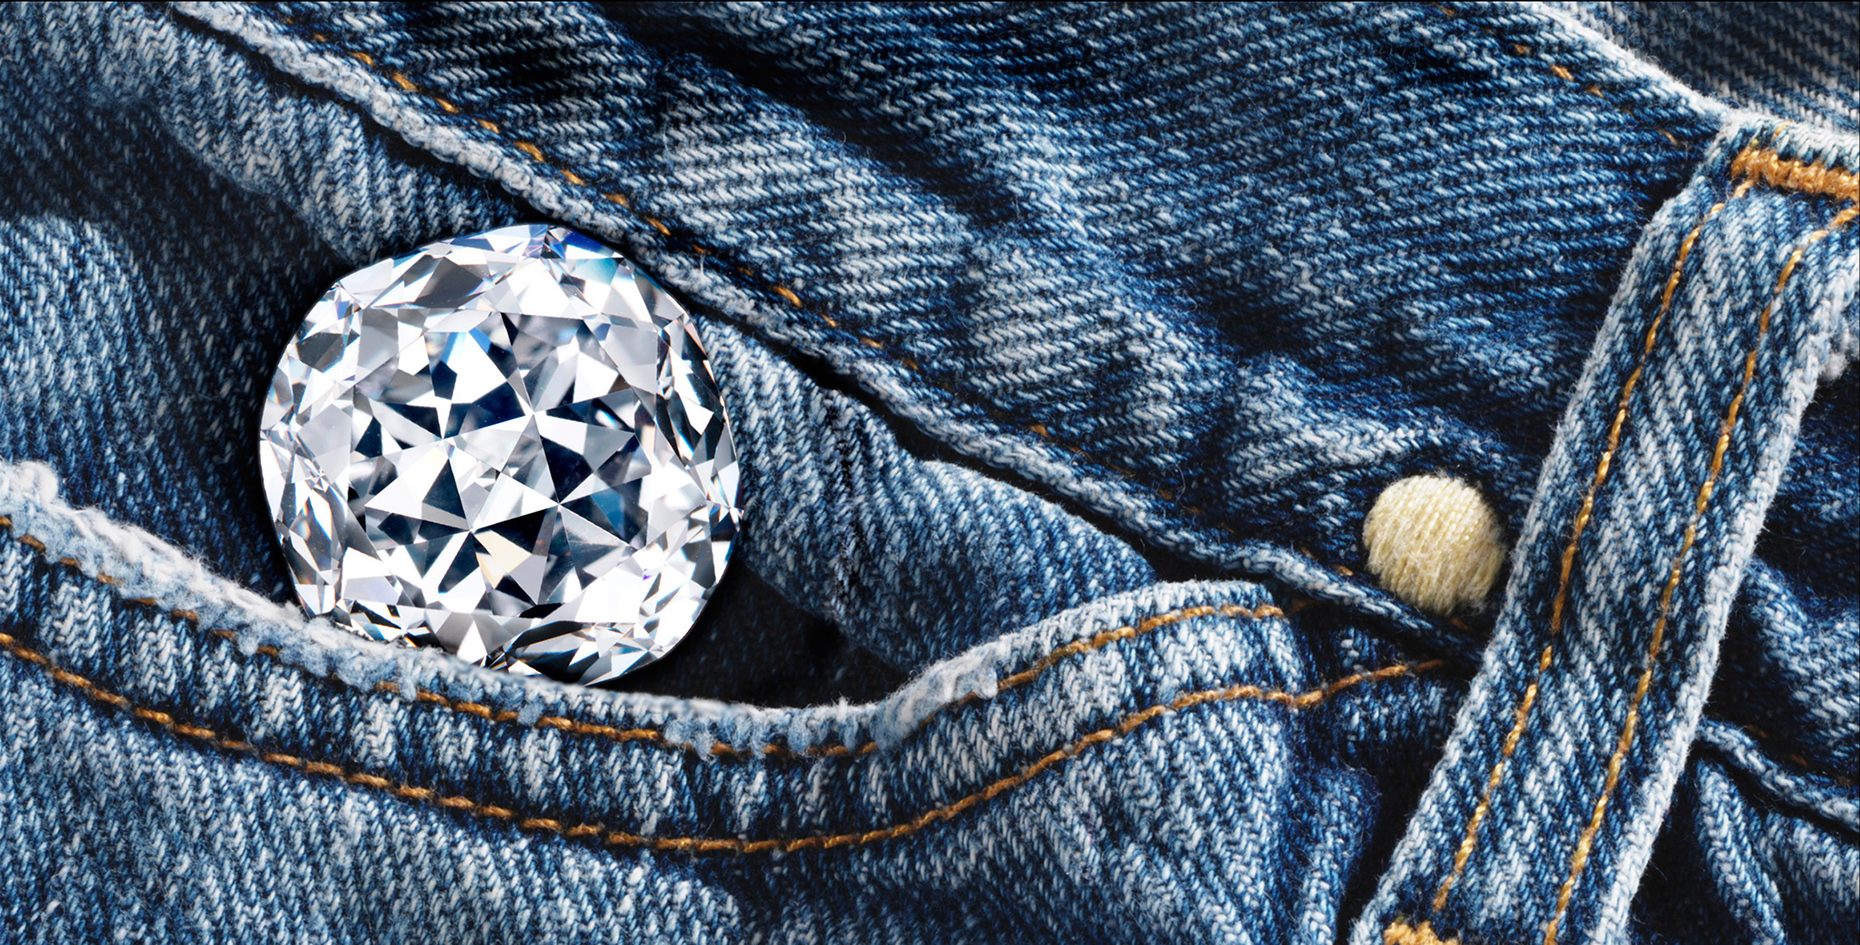 Diamond in Blue Jeans pocket